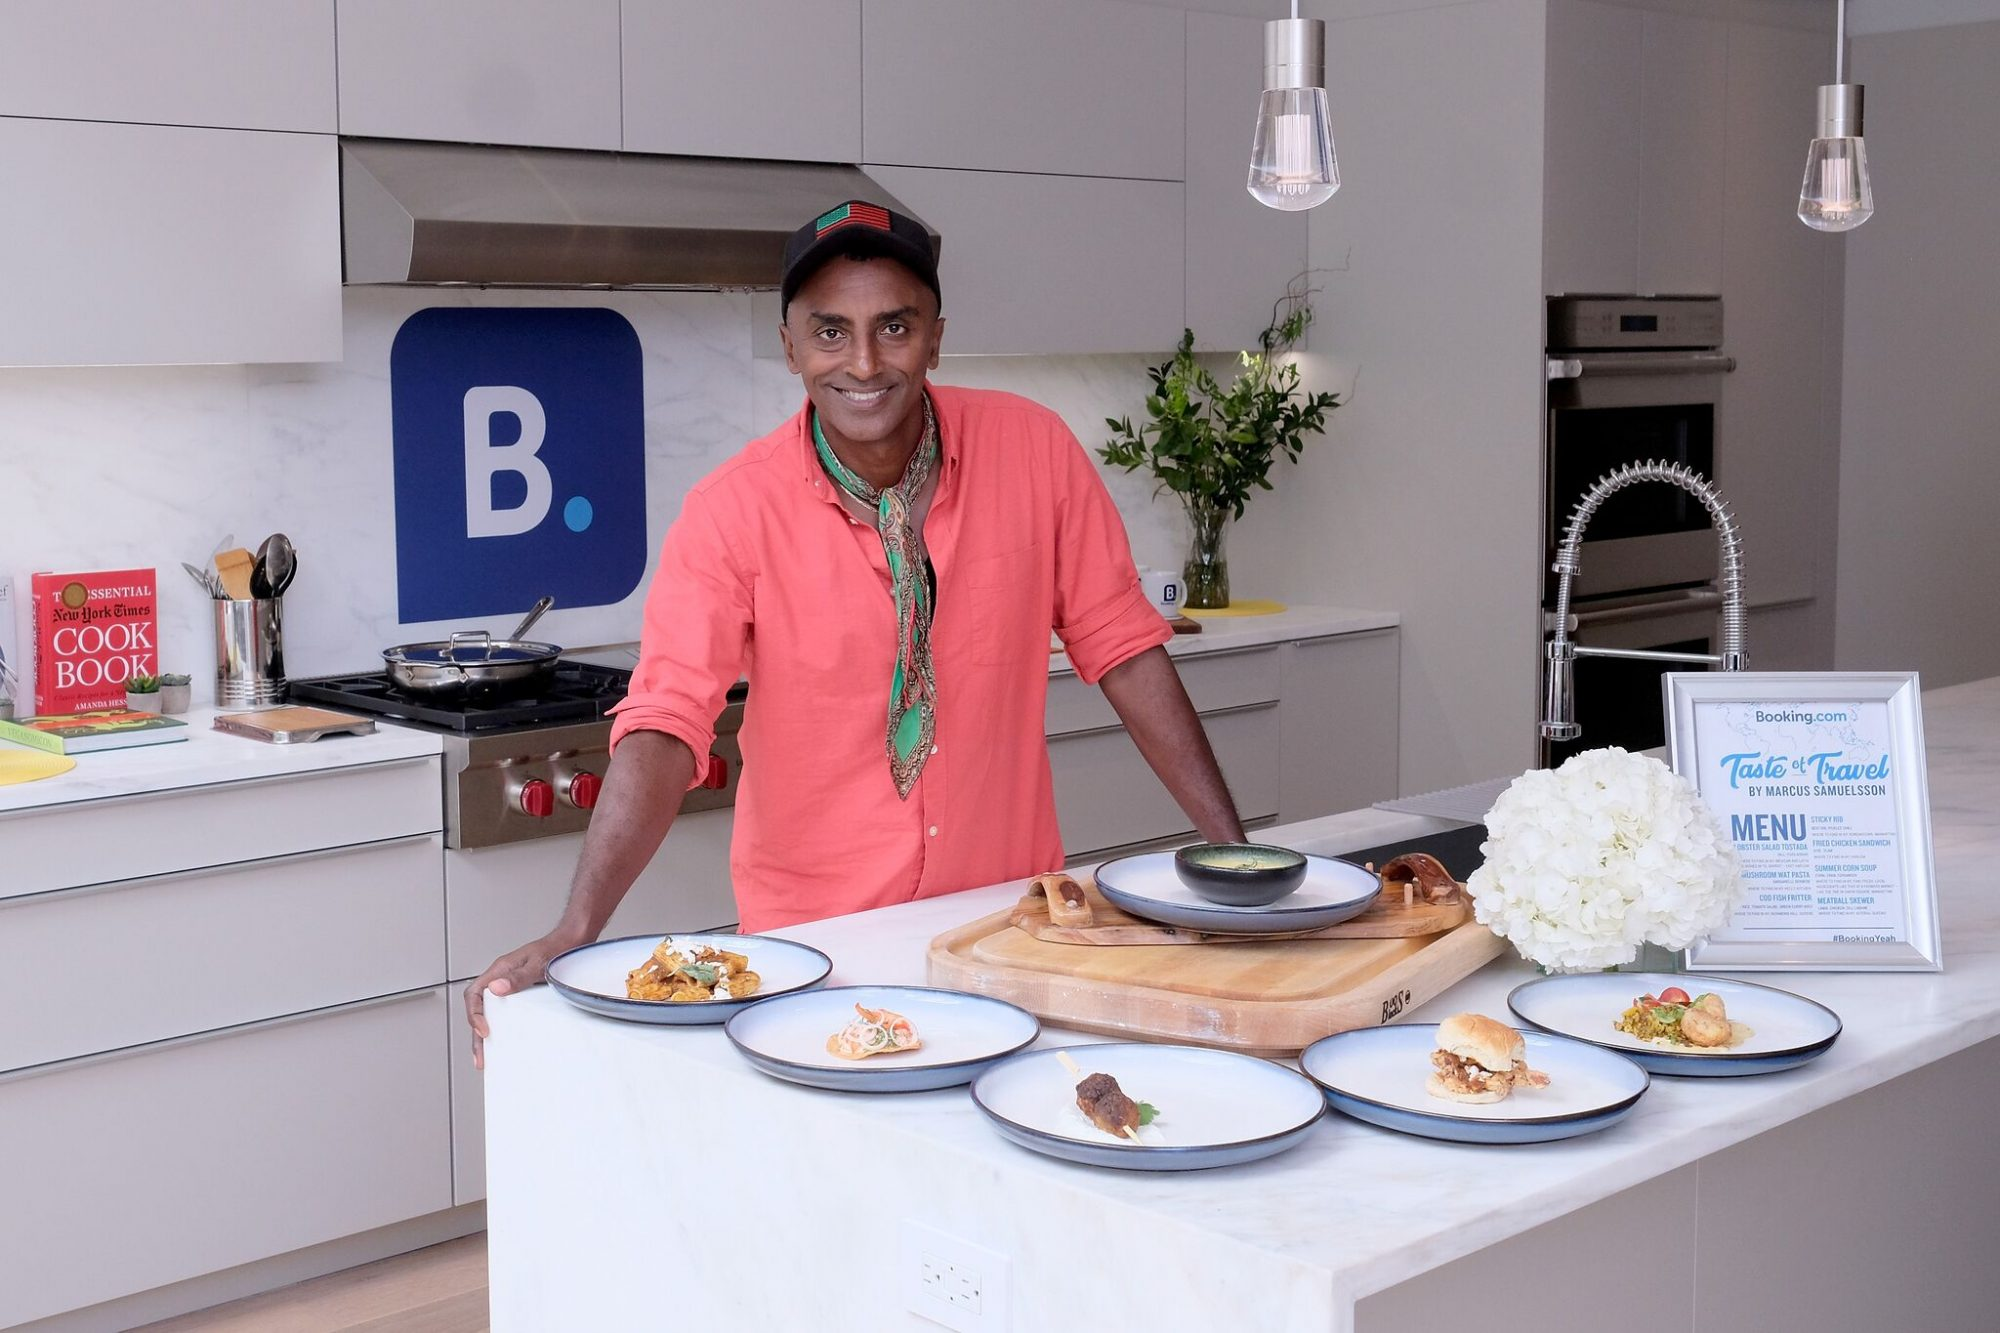 Marcus Samuelsson Says He Wasn't Paid for His First 3 Jobs. Now He's One of the Top Chefs in the Country